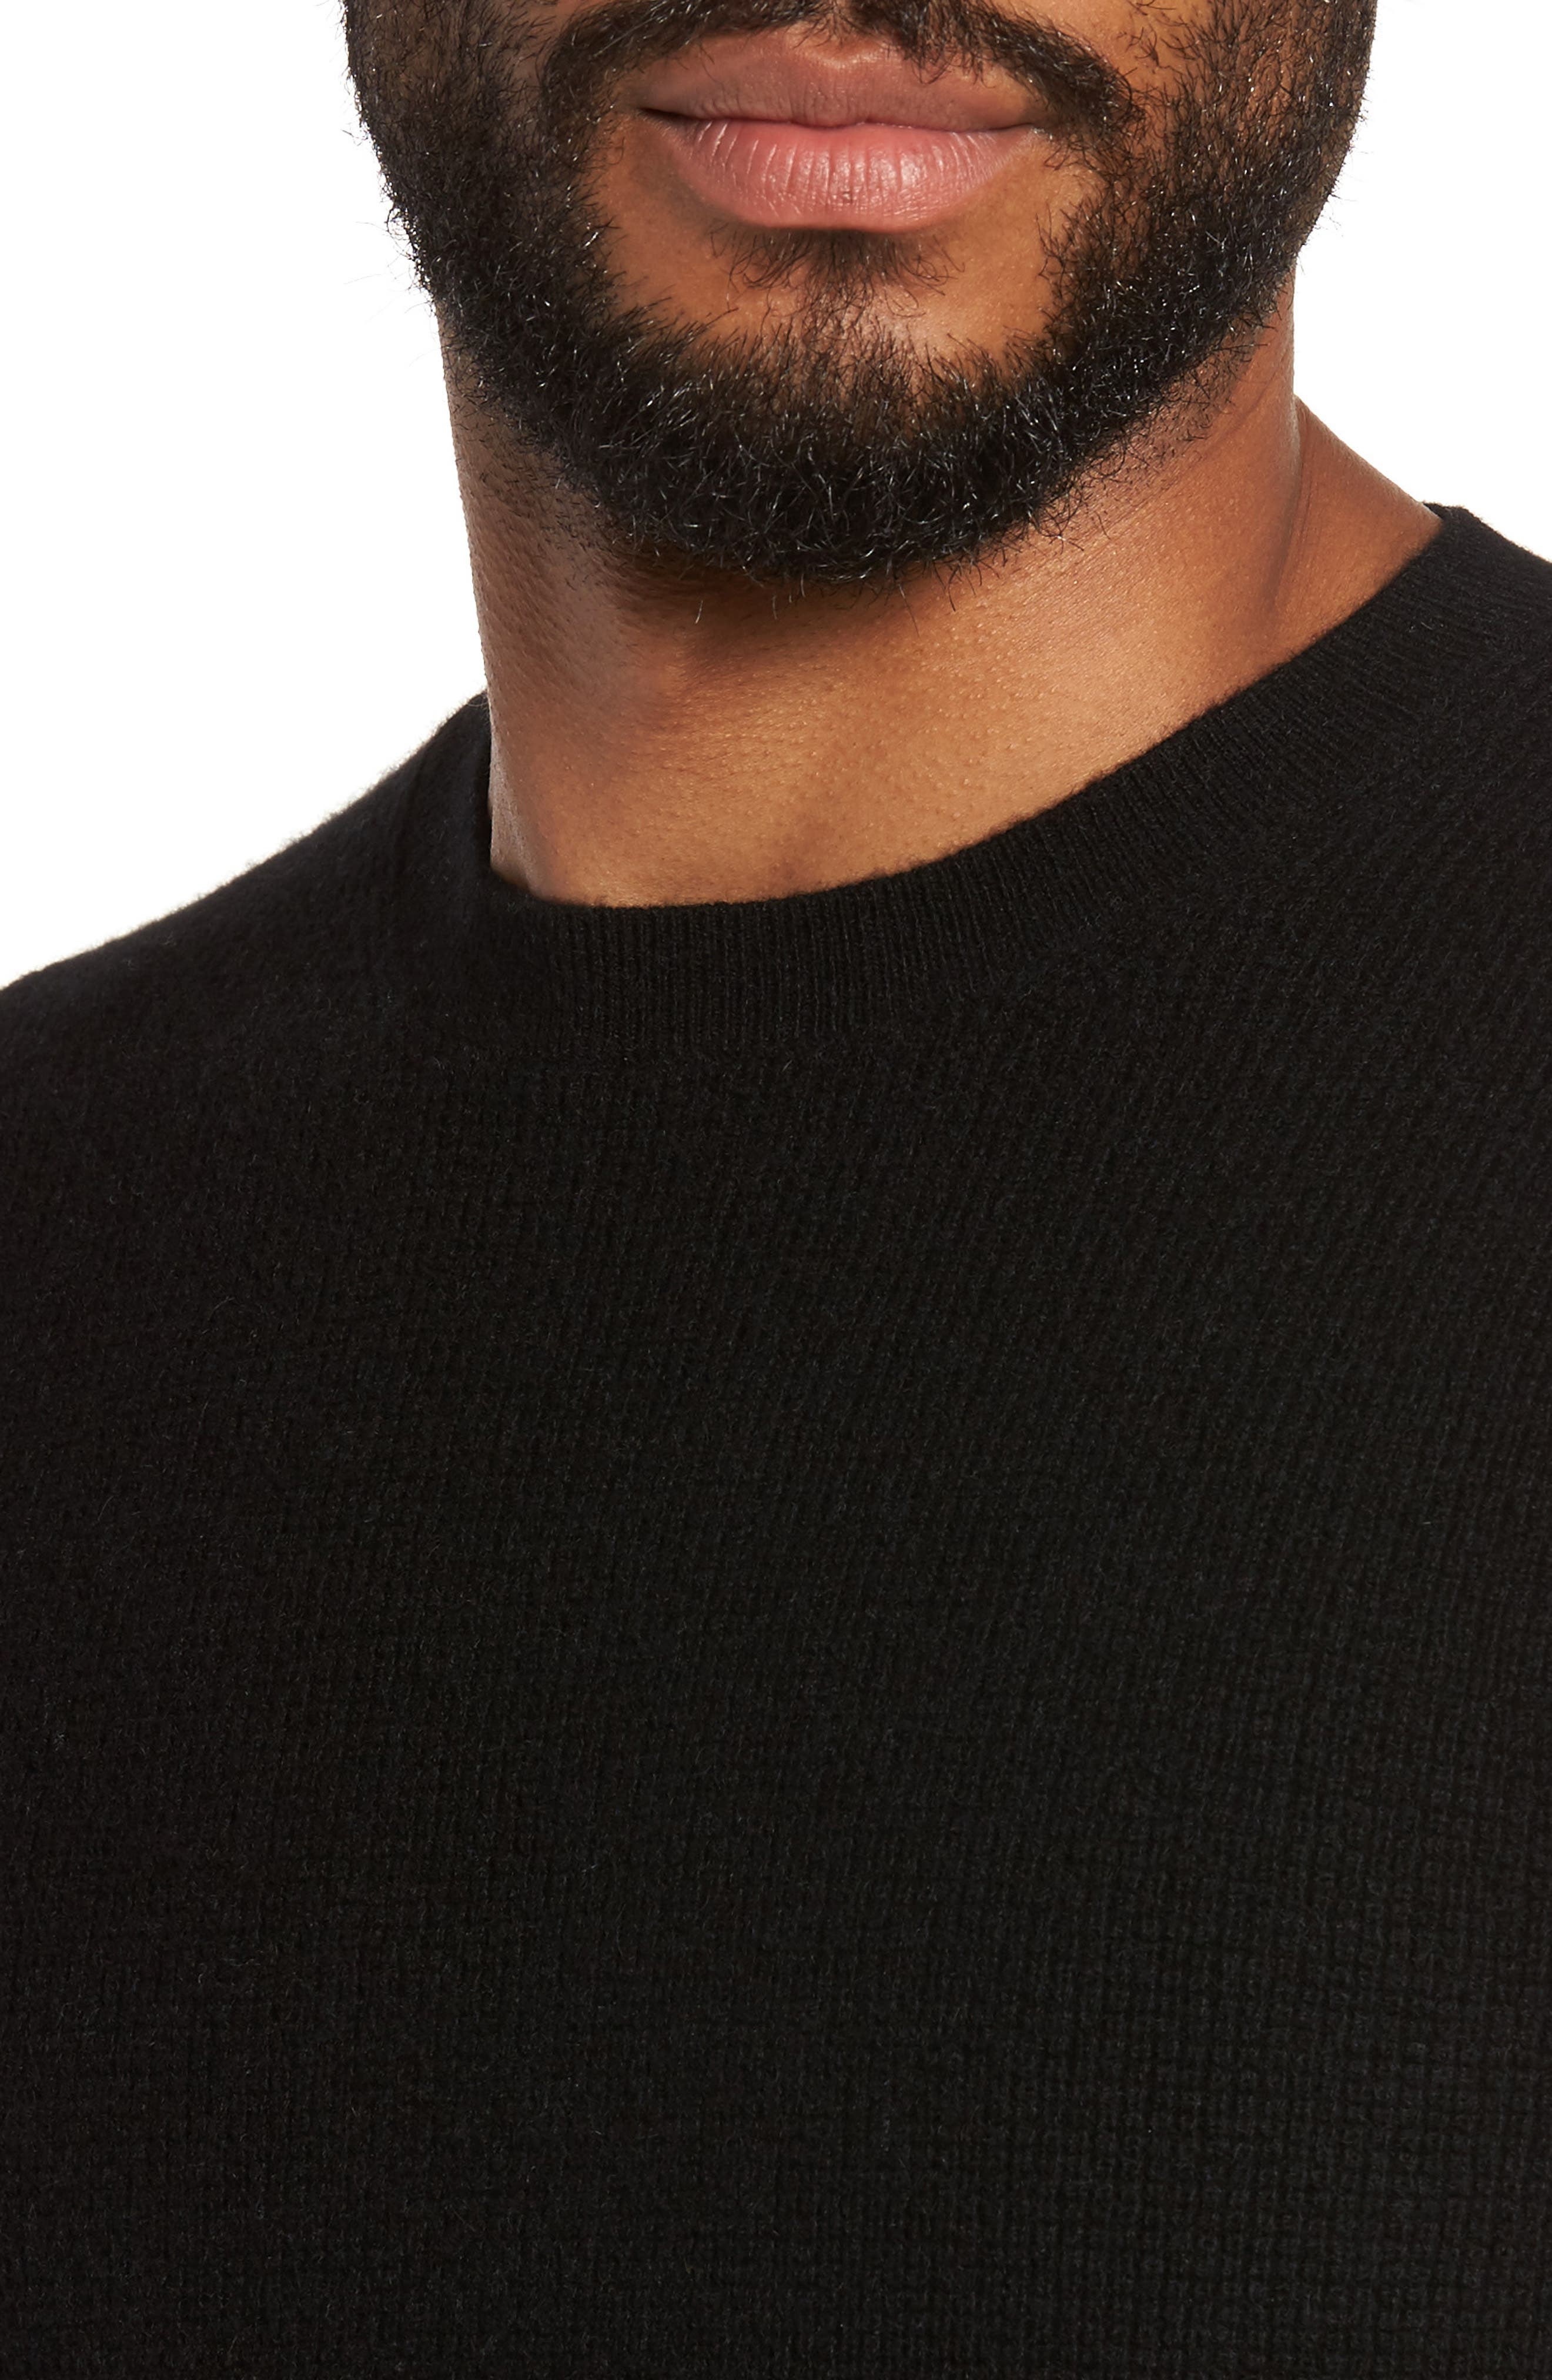 Thermal Wool & Cashmere Sweater,                             Alternate thumbnail 4, color,                             Black